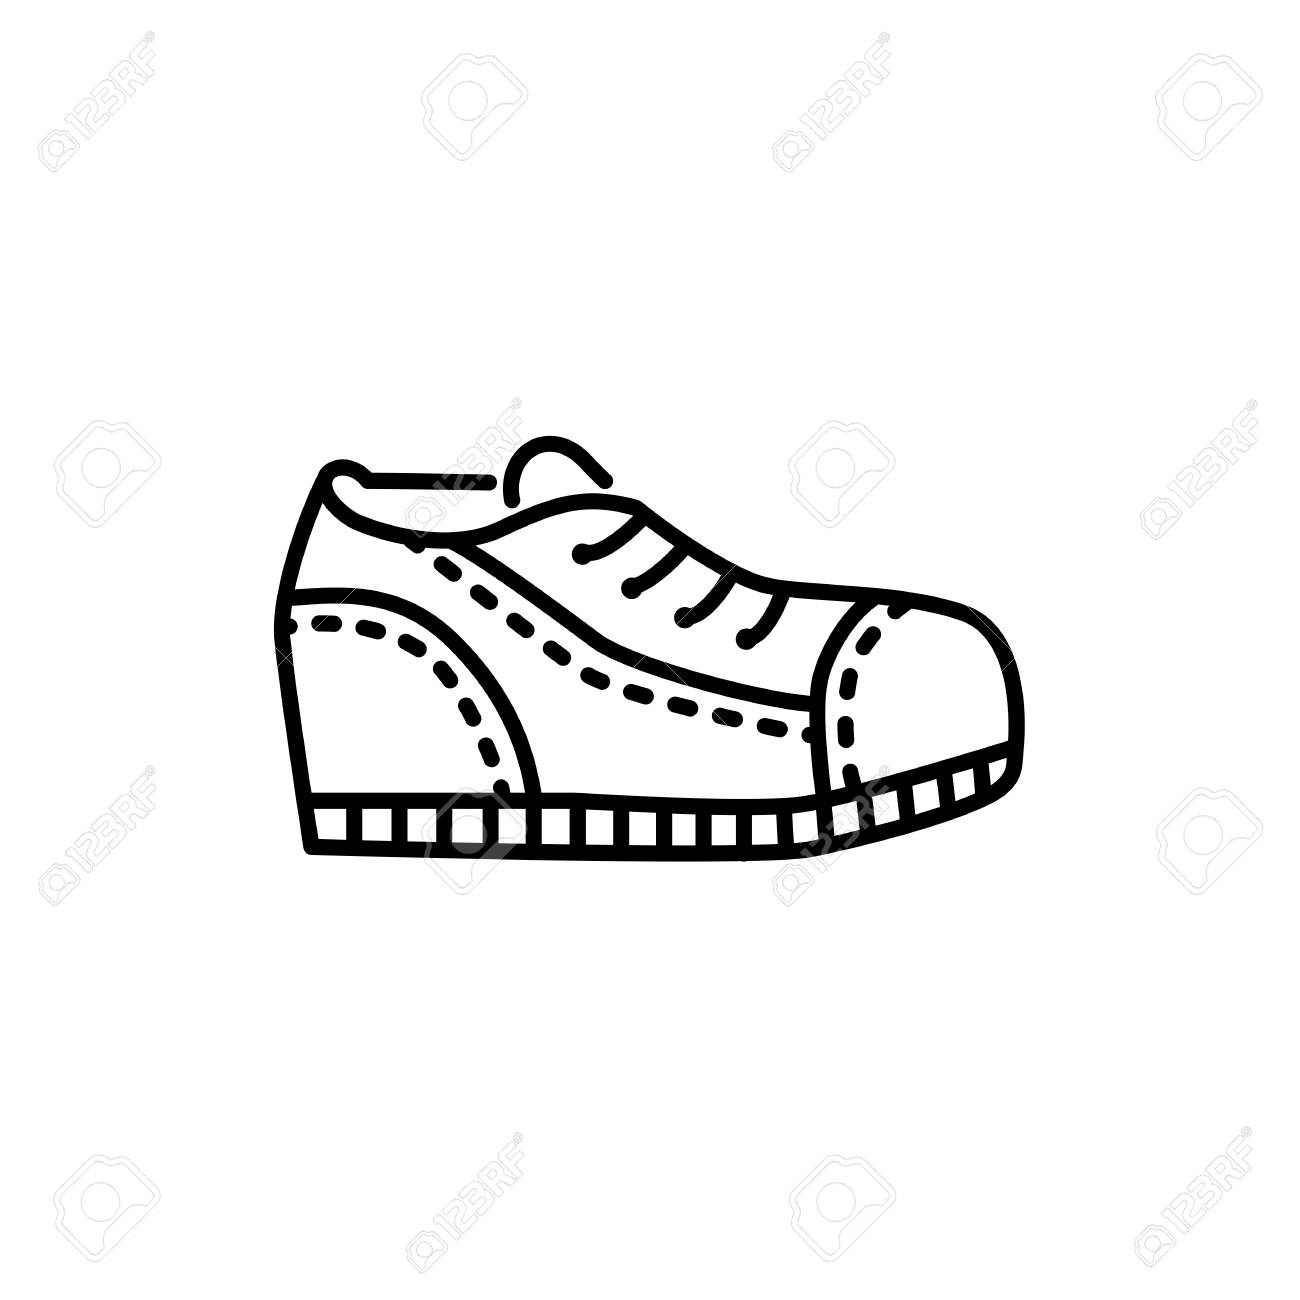 FootwearIsolated Blackamp; Of Running On Sport With Background White Icon Vector Illustration LacesMen's Object Shoes ShoesLine Male mNnv8O0w